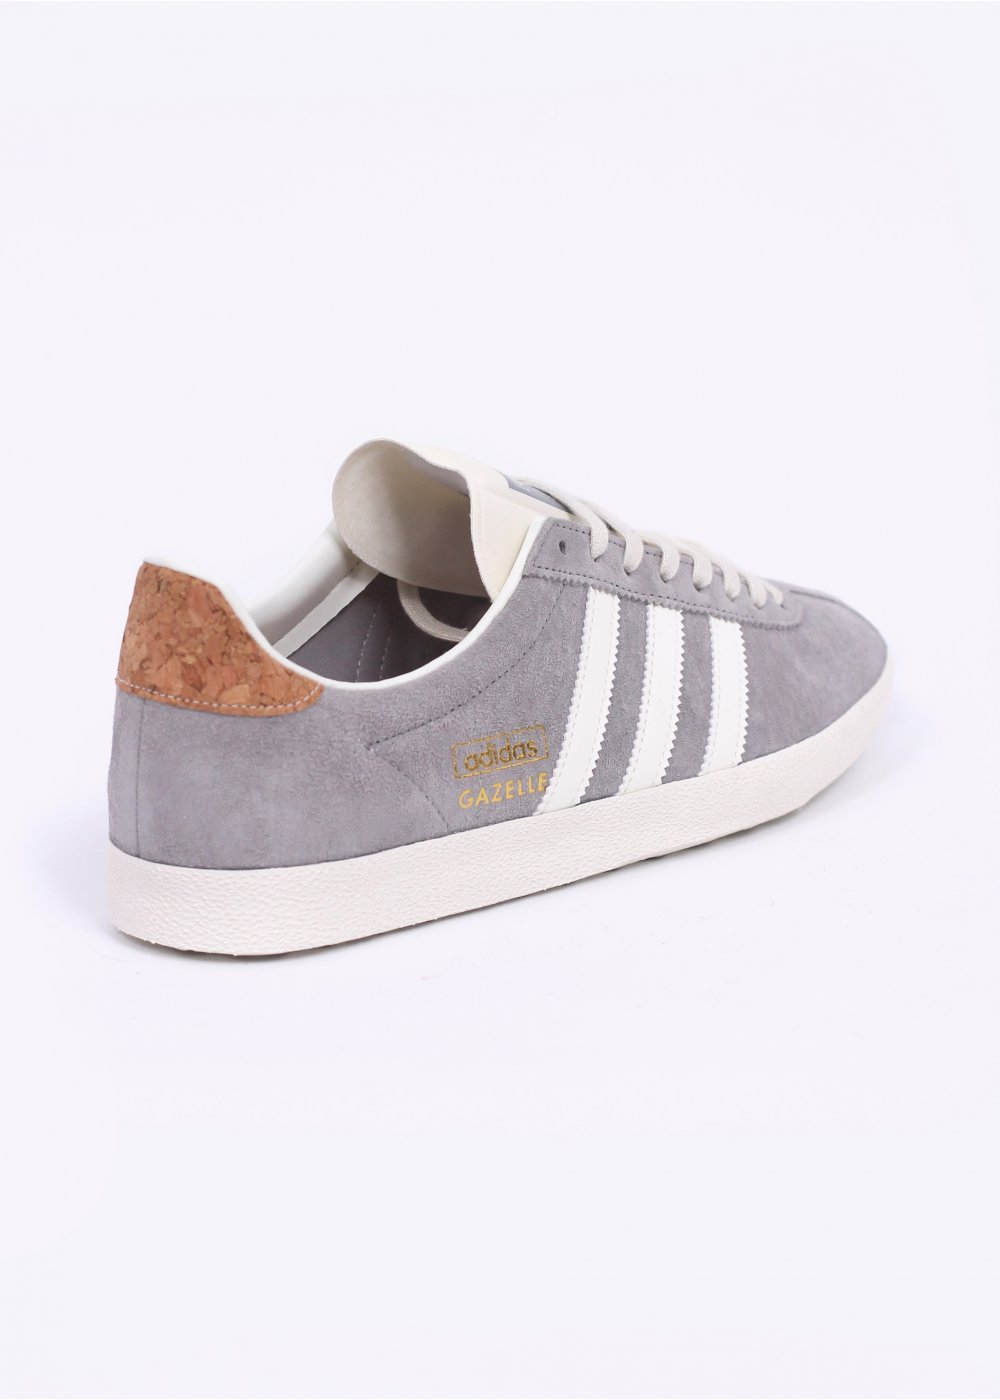 adidas gazelle og womens grey adidas superstar shoes buy online ... 0aa9a90882